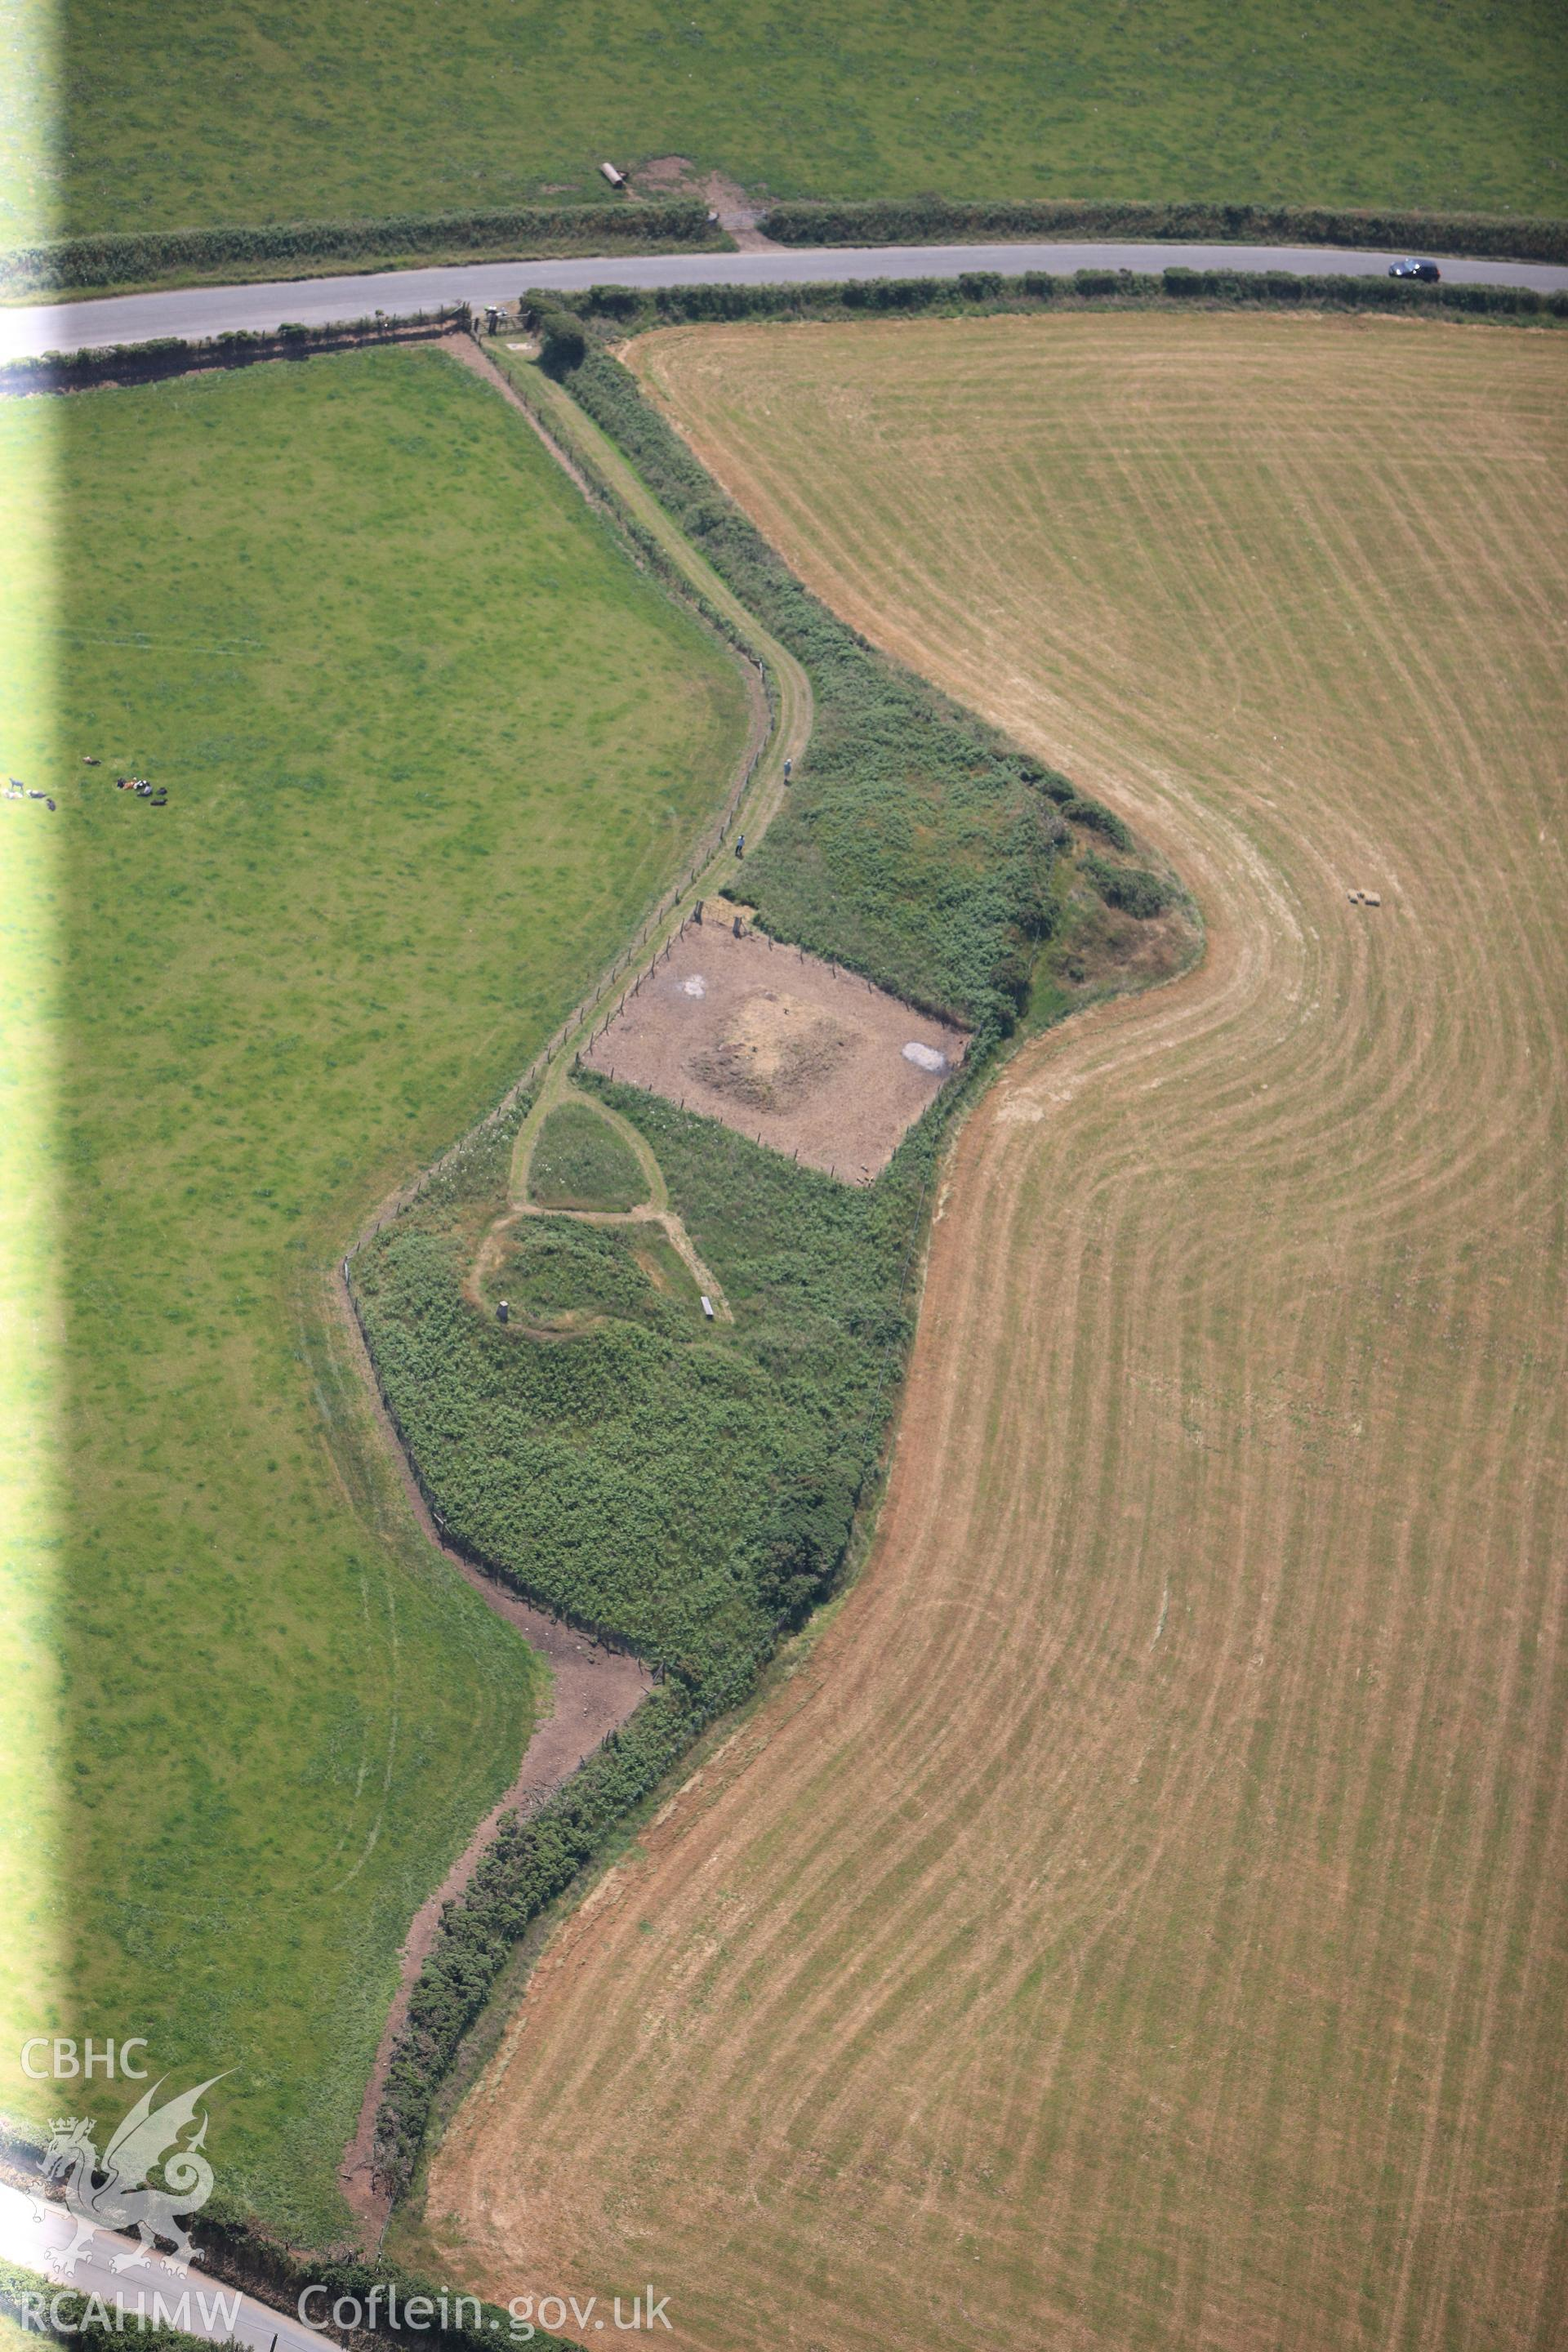 Crugiau Cemmaes barrows, south west of Cardigan. Oblique aerial photograph taken during the Royal Commission?s programme of archaeological aerial reconnaissance by Toby Driver on 12th July 2013.